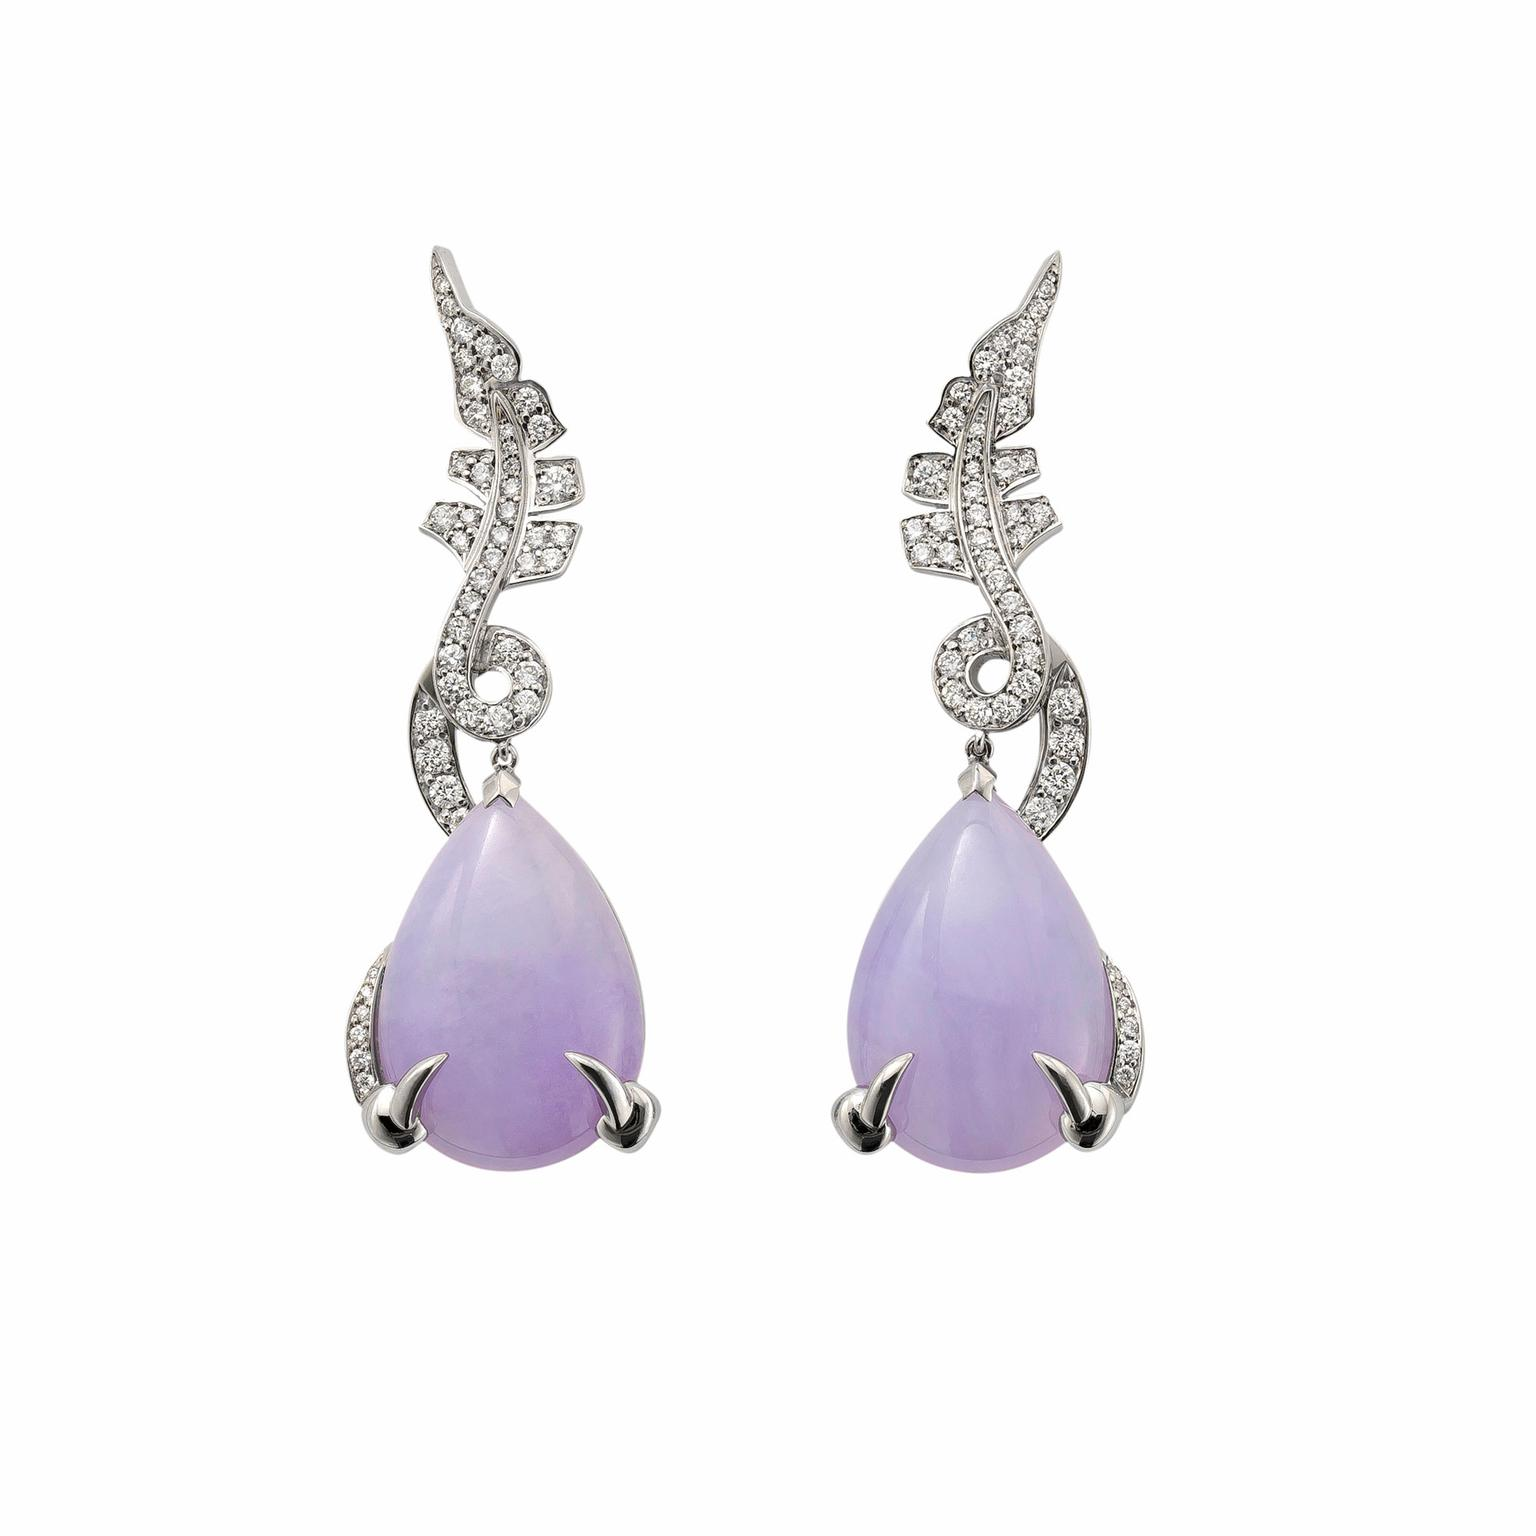 David Marshall lavender jade Dragon earrings